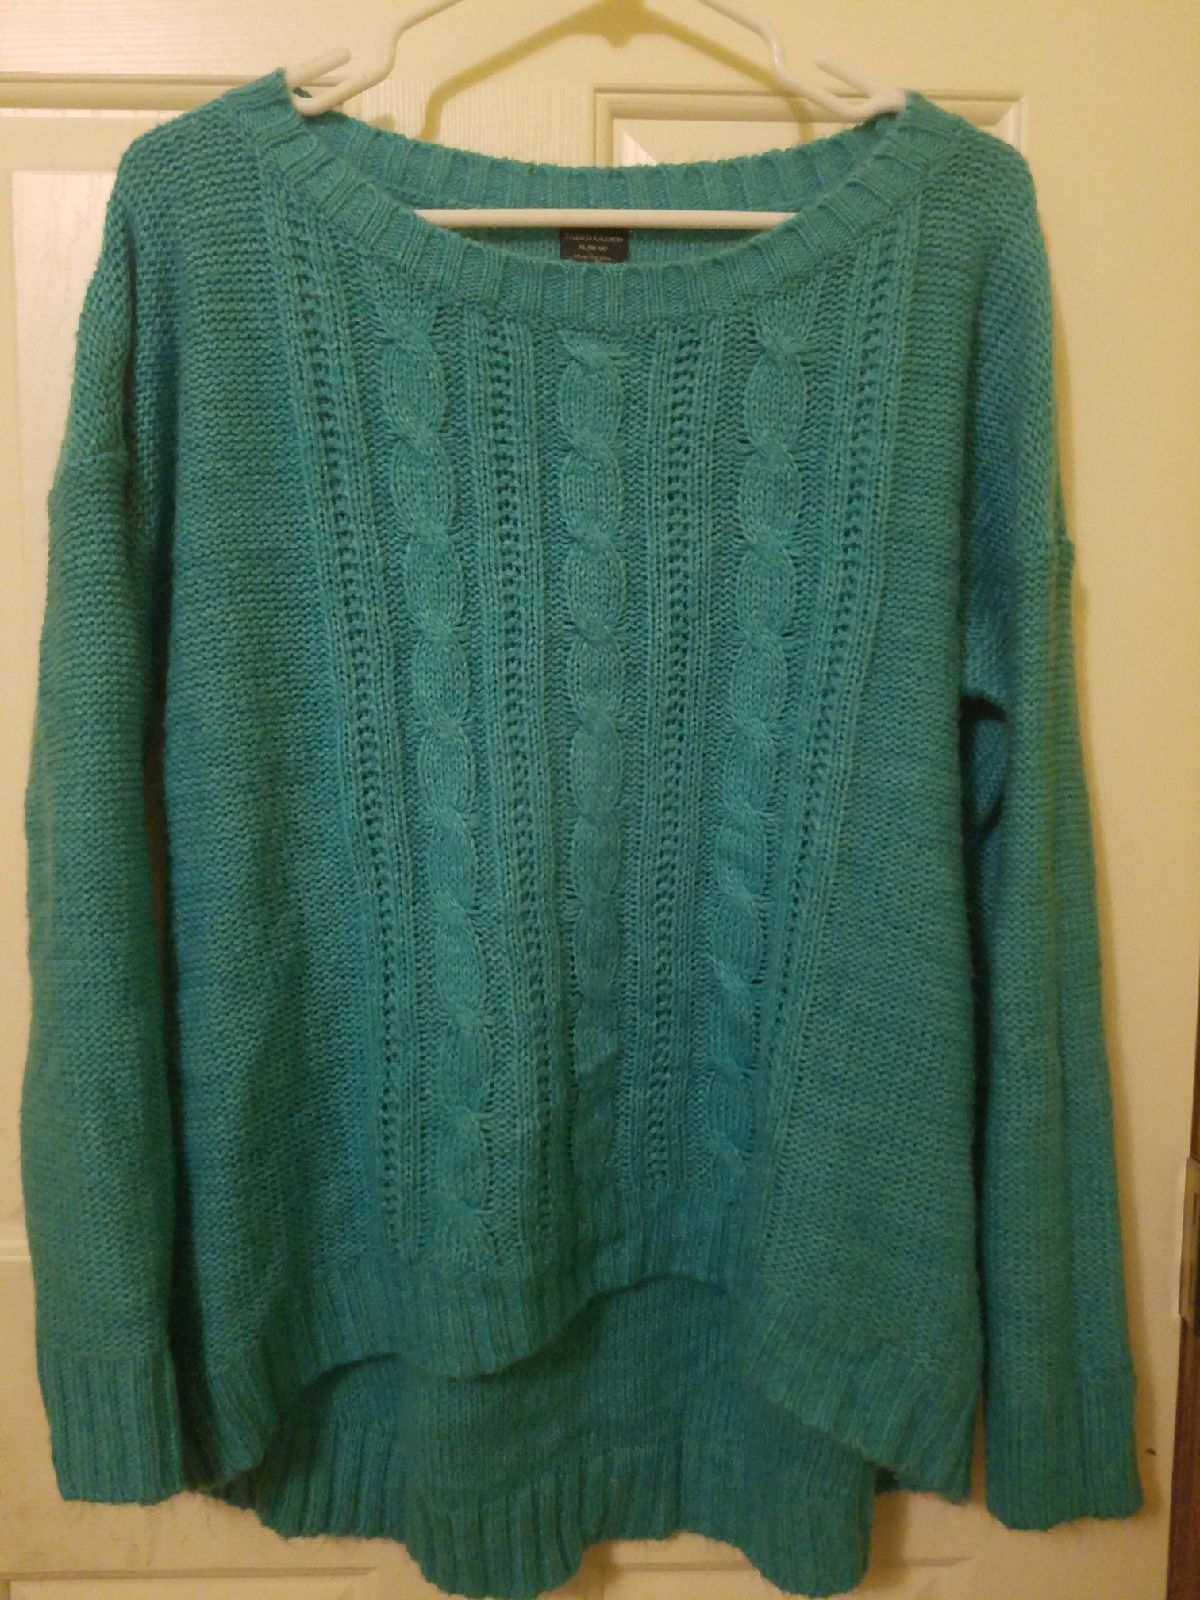 Teal Cable Knit Sweater - Mercari: BUY & SELL THINGS YOU LOVE